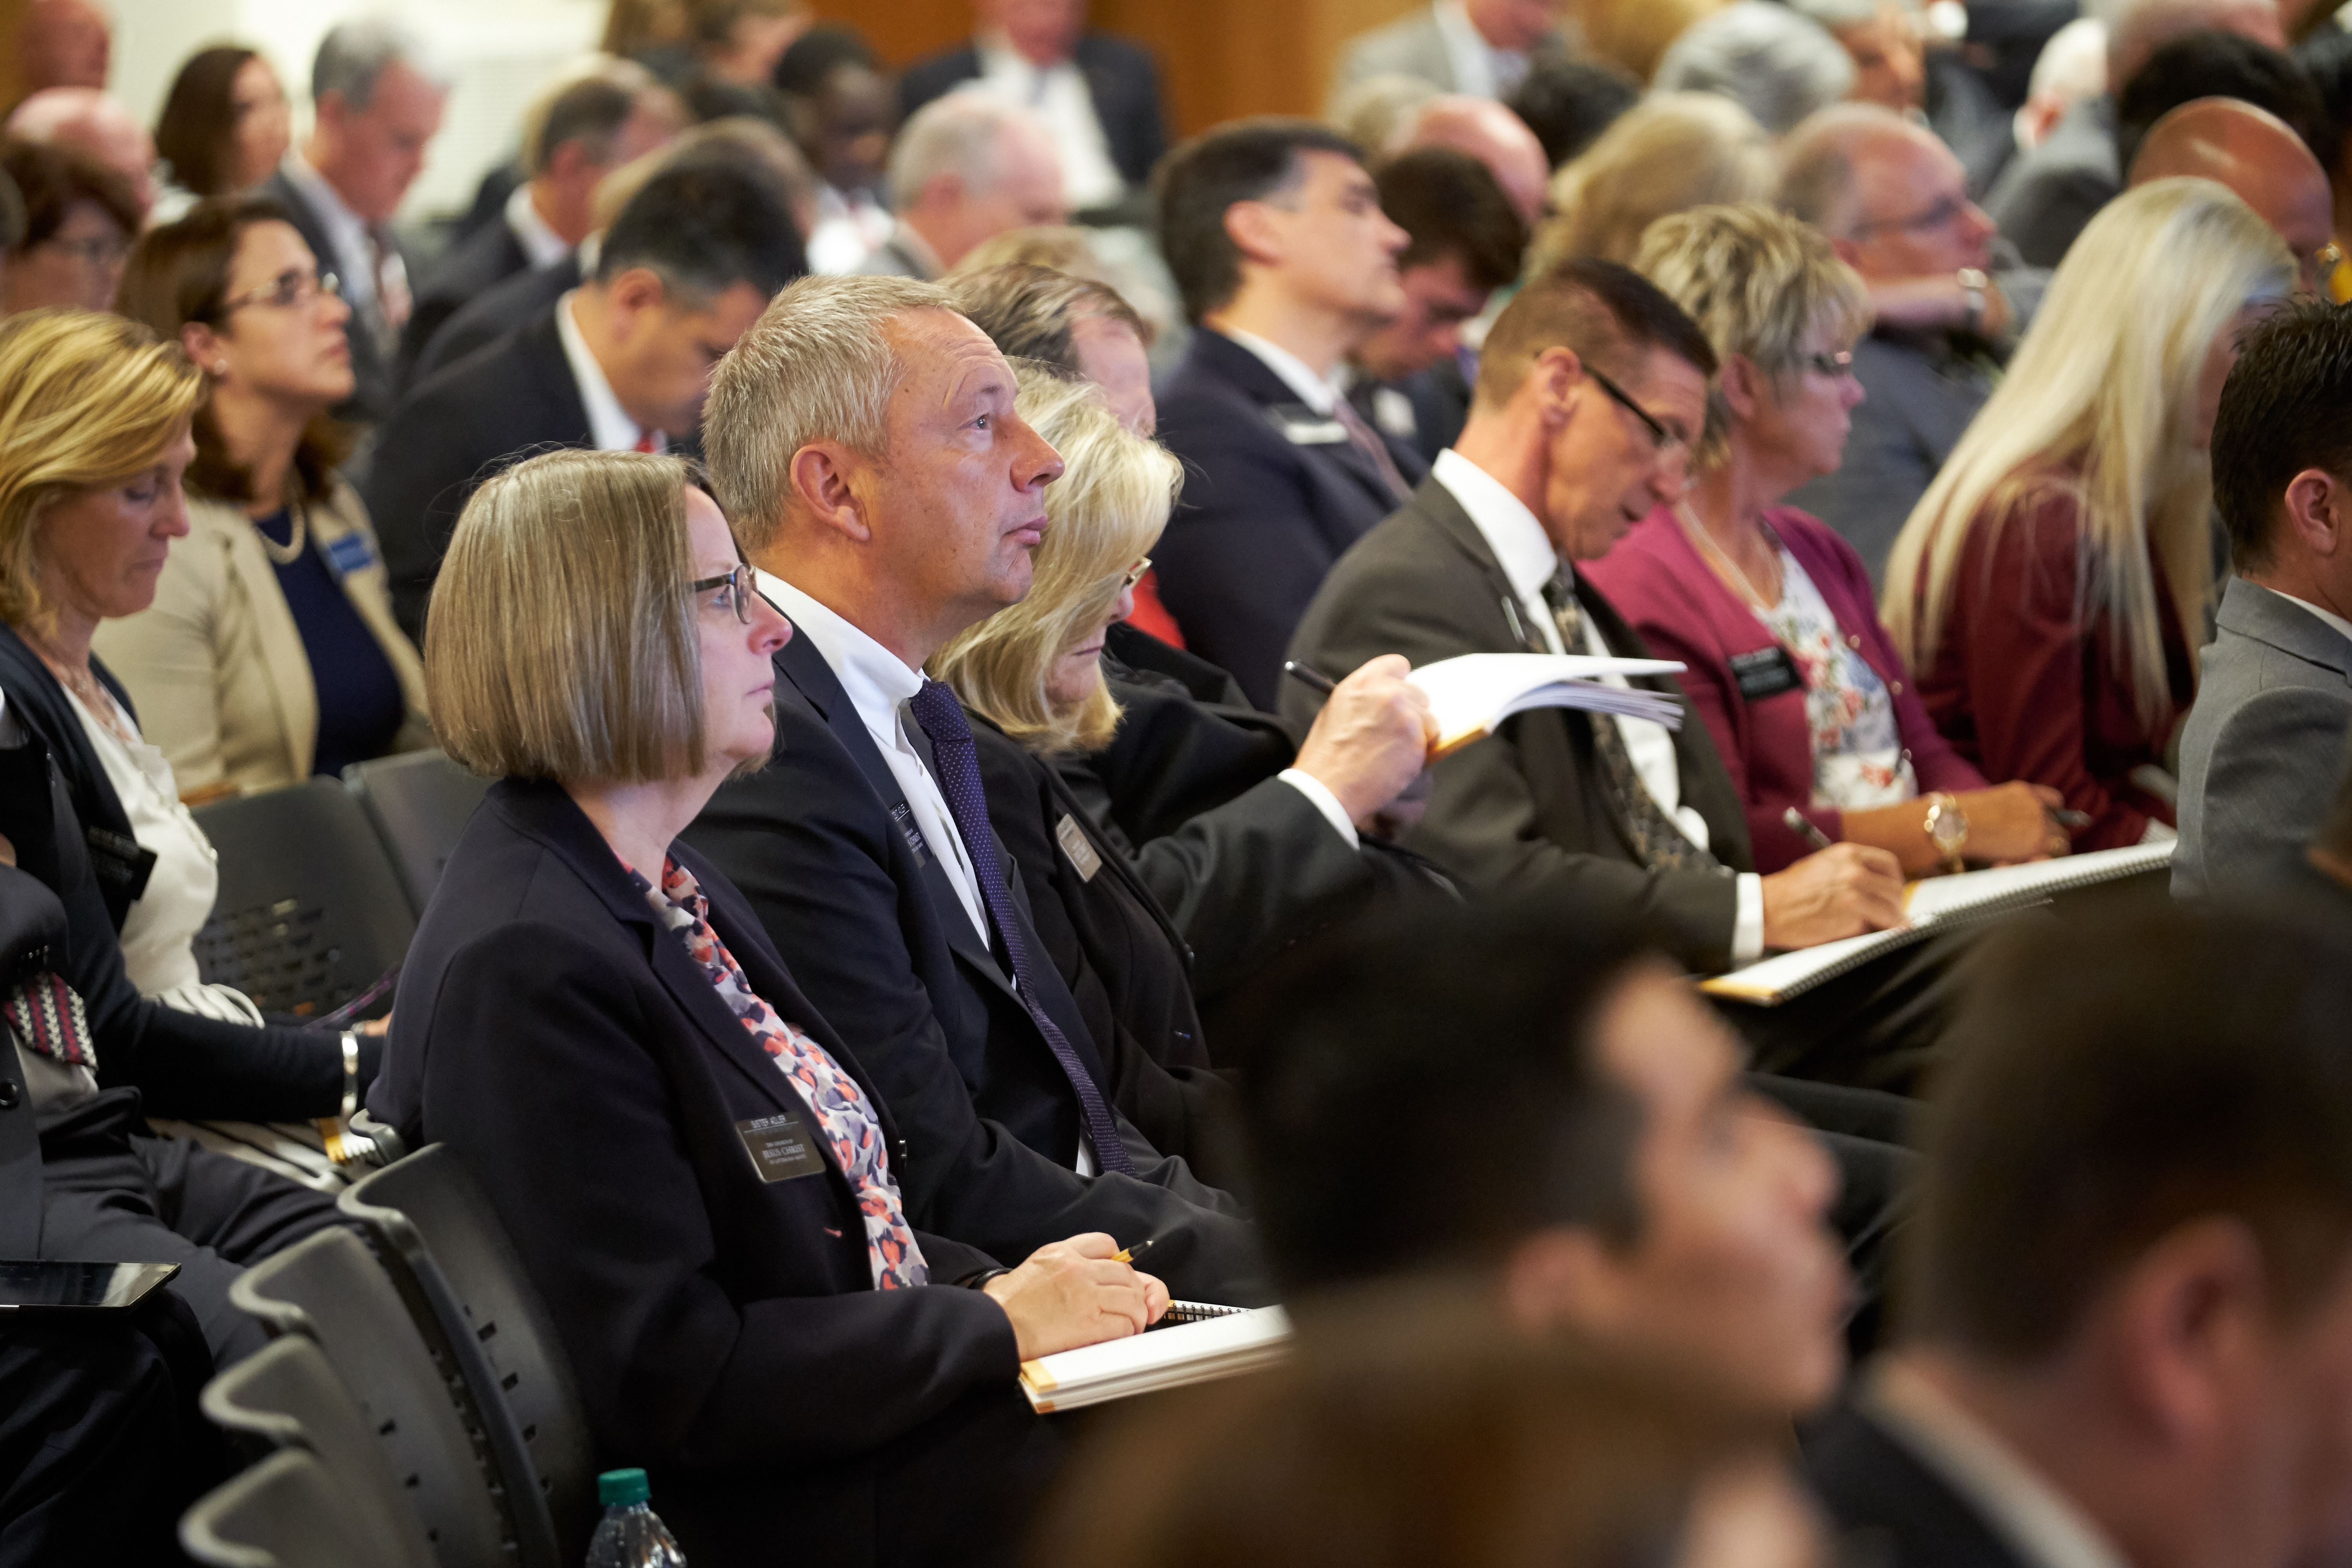 Mission presidents and their companions listen to a session during the 2018 Mission Leadership Seminar at the Provo Missionary Training Center. In the 2019 Mission Leadership Seminar, Elder Christofferson spoke about the importance of using the Book of Mormon when teaching investigators.